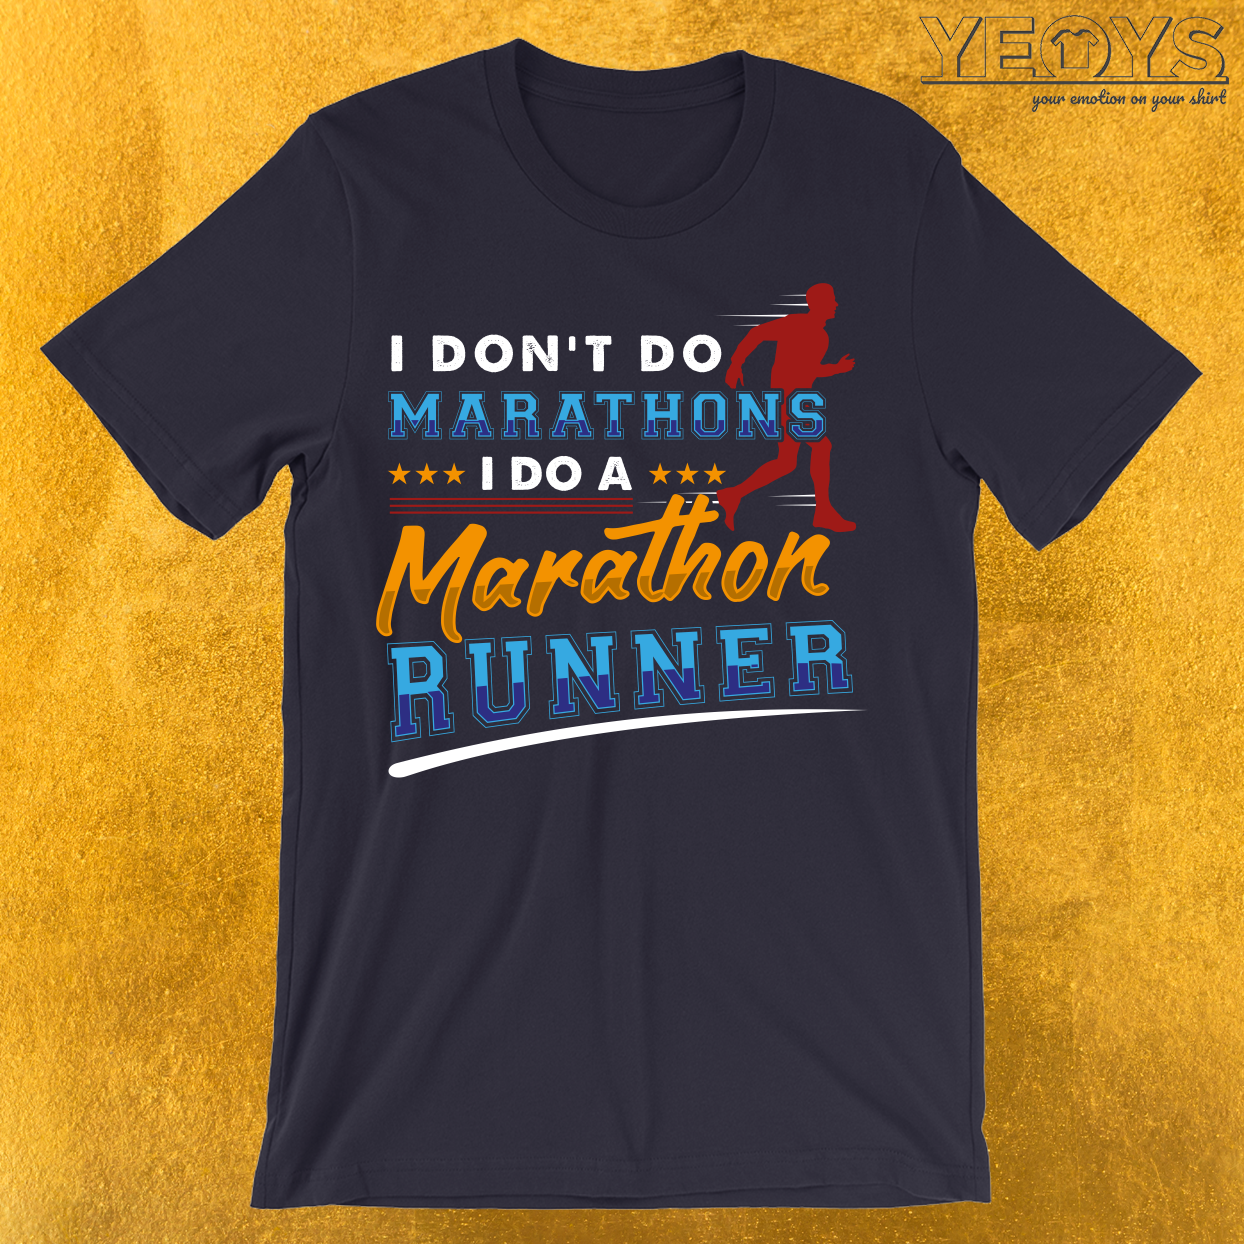 I Don't Do Marathons I Do A Marathon Runner T-Shirt